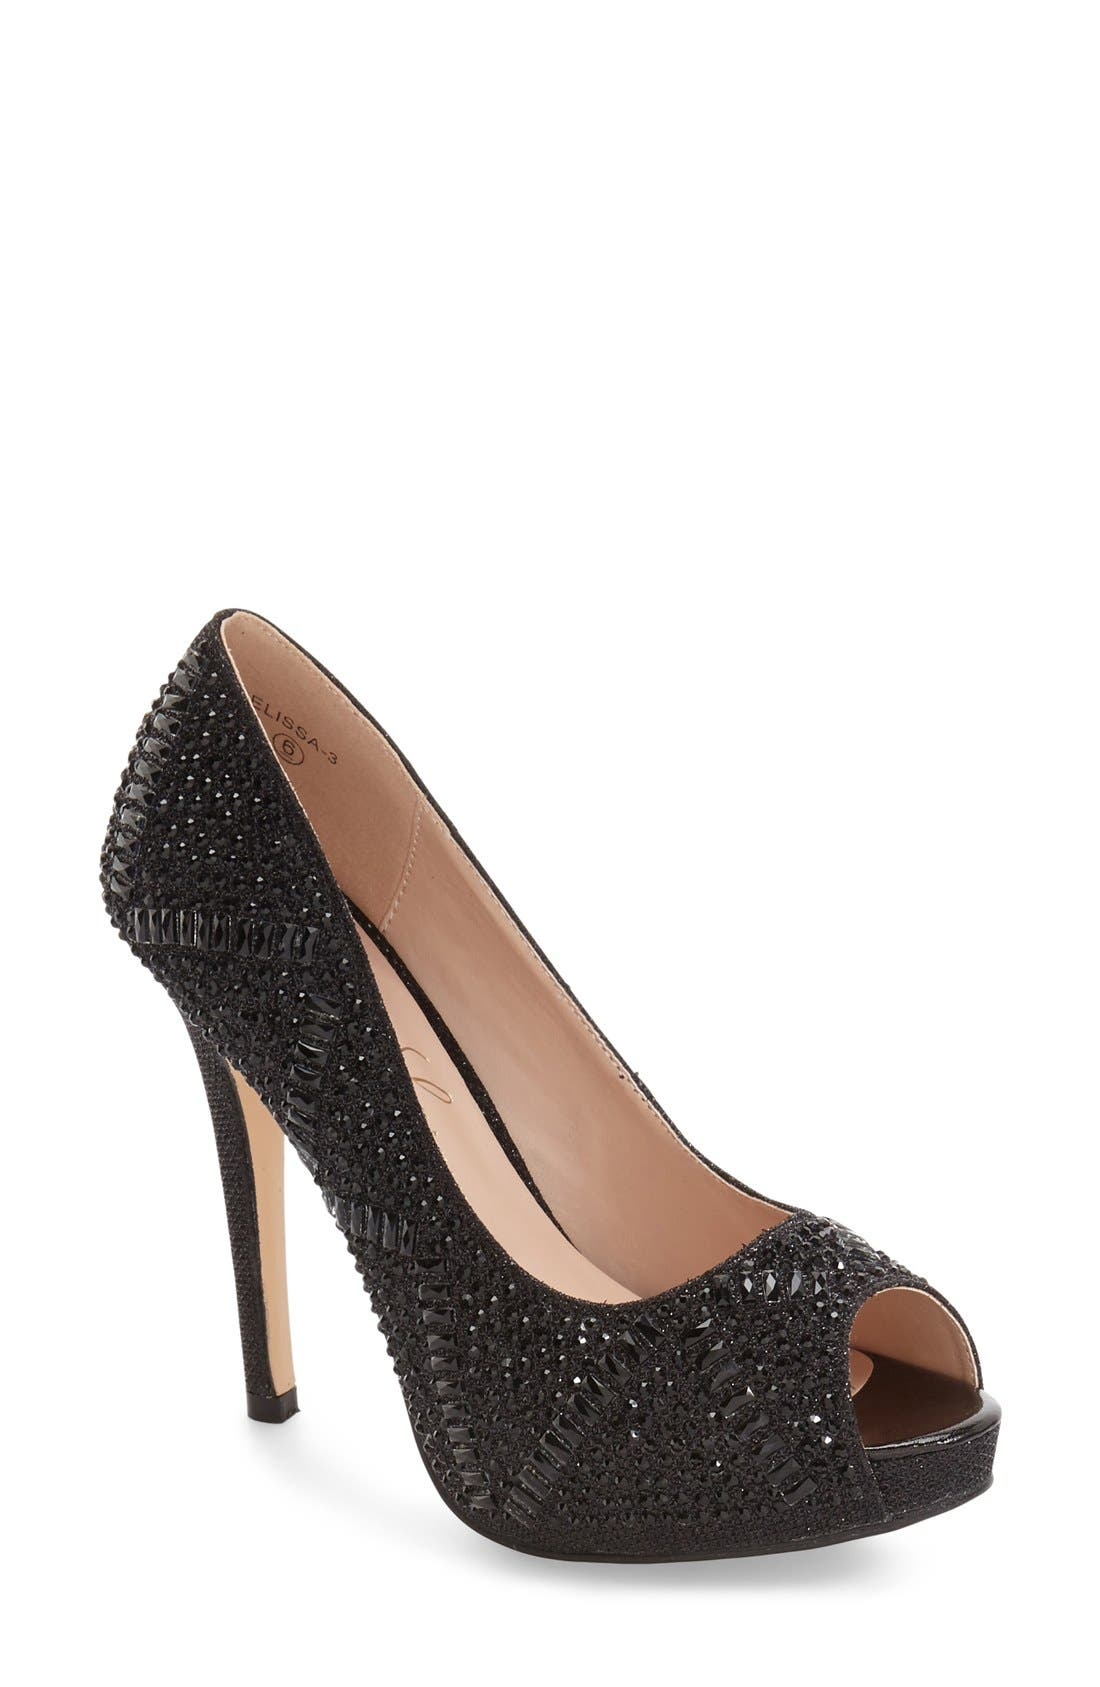 Elissa - 3 Peep Toe Pump,                             Main thumbnail 1, color,                             Black